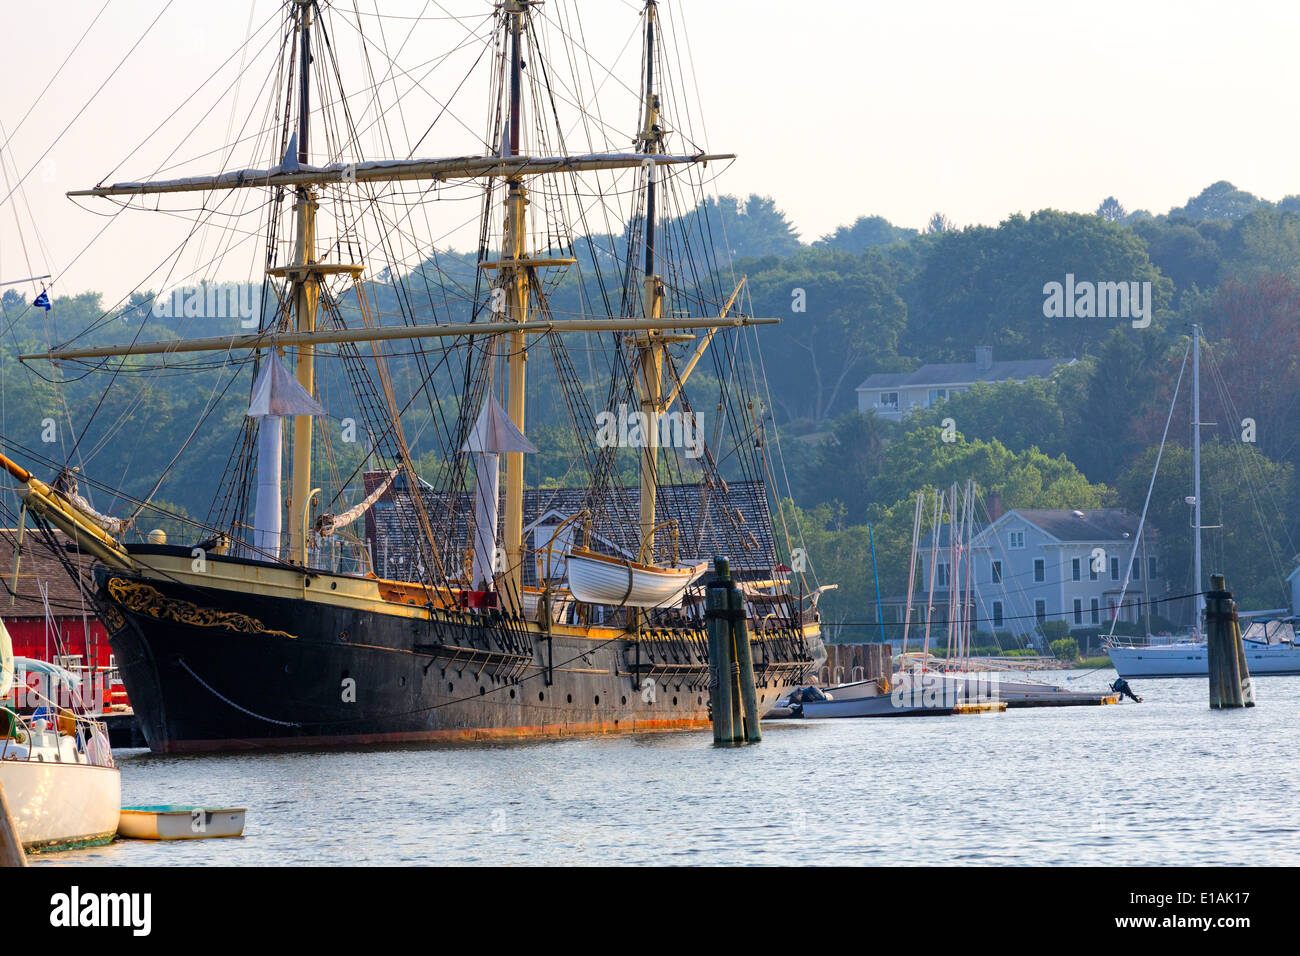 Low Angle View of the Joseph Conrad Fully Rigged Tall Ship, MysticSeaport Maritime Museum, Mystic, Connecticut - Stock Image